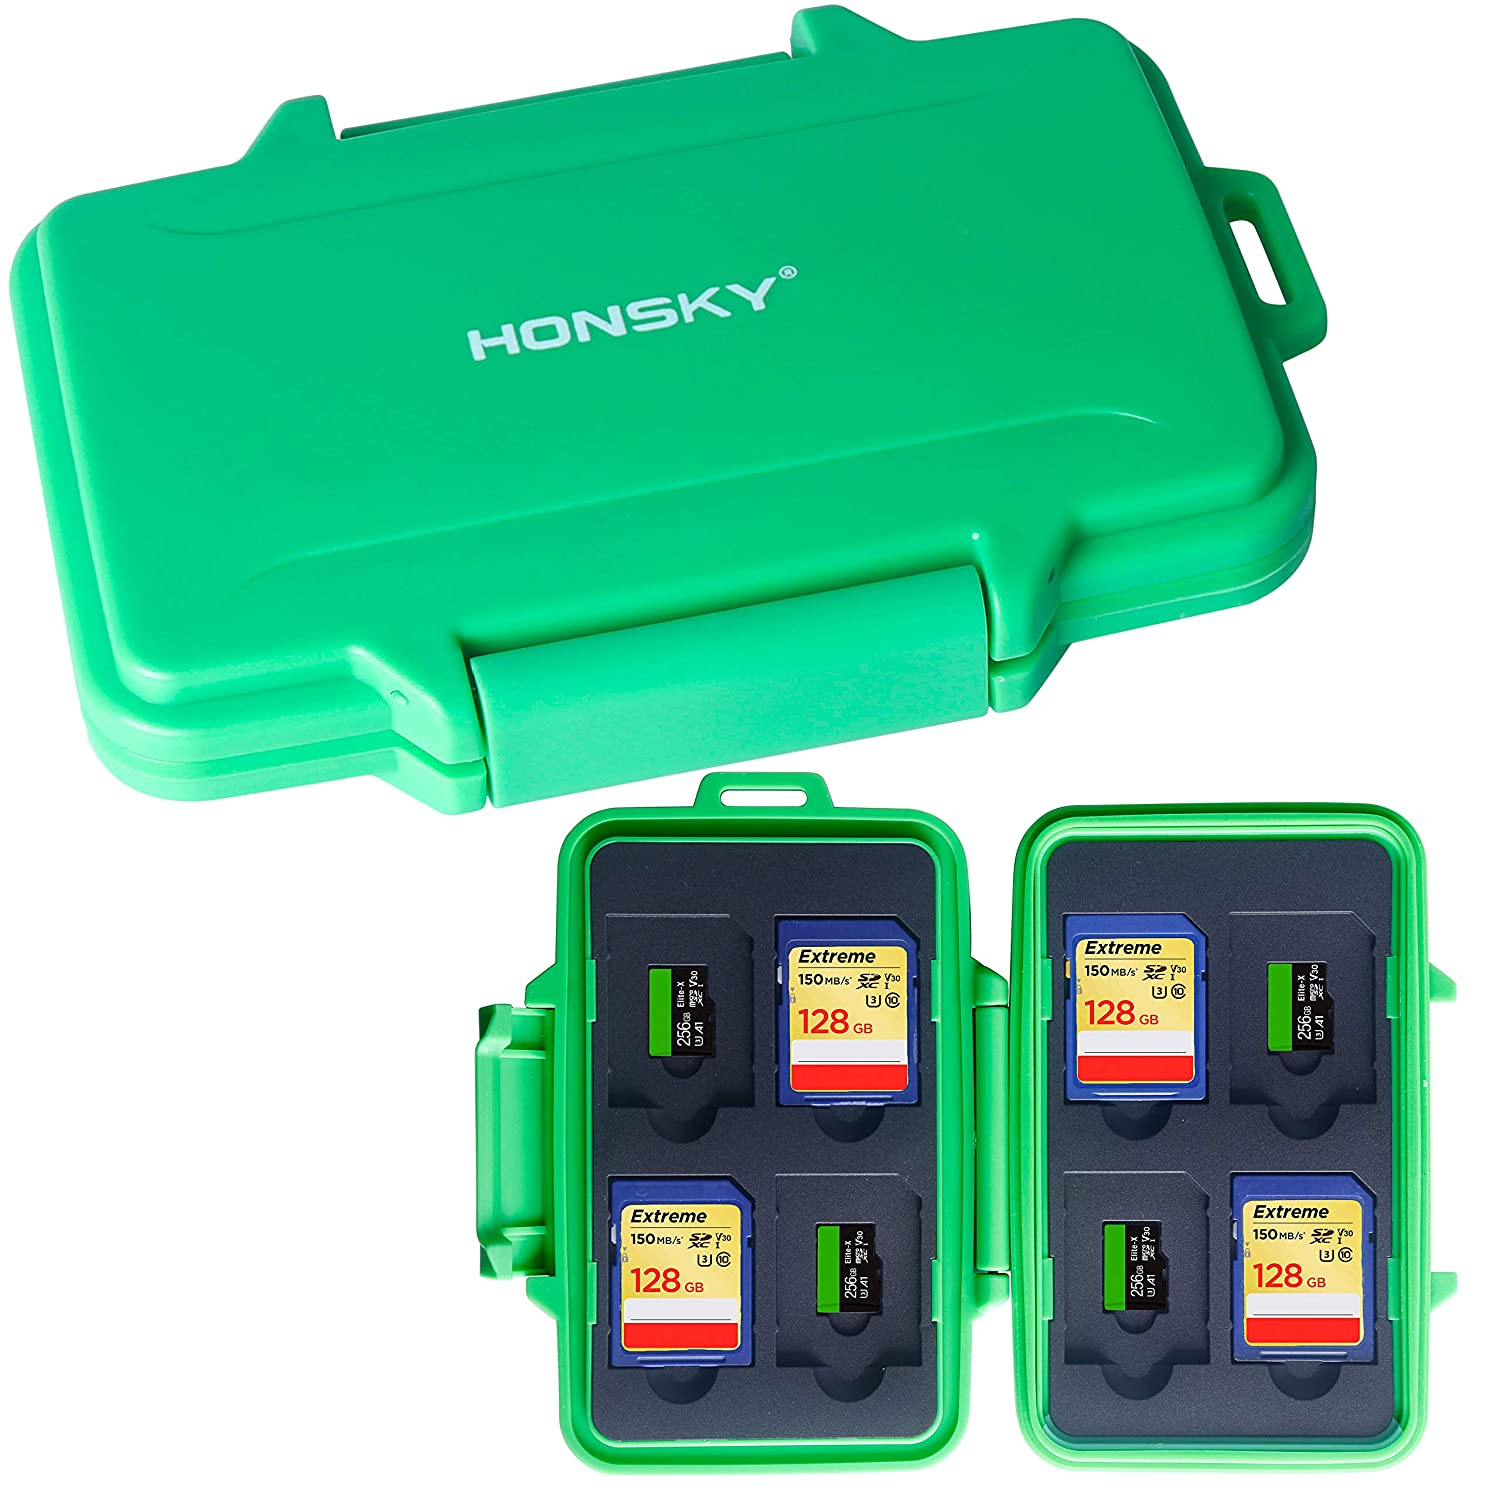 SD Card Holder Green Micro SD Cards SDHC SDXC Honsky Waterproof Memory Card Holder Case for SD Cards